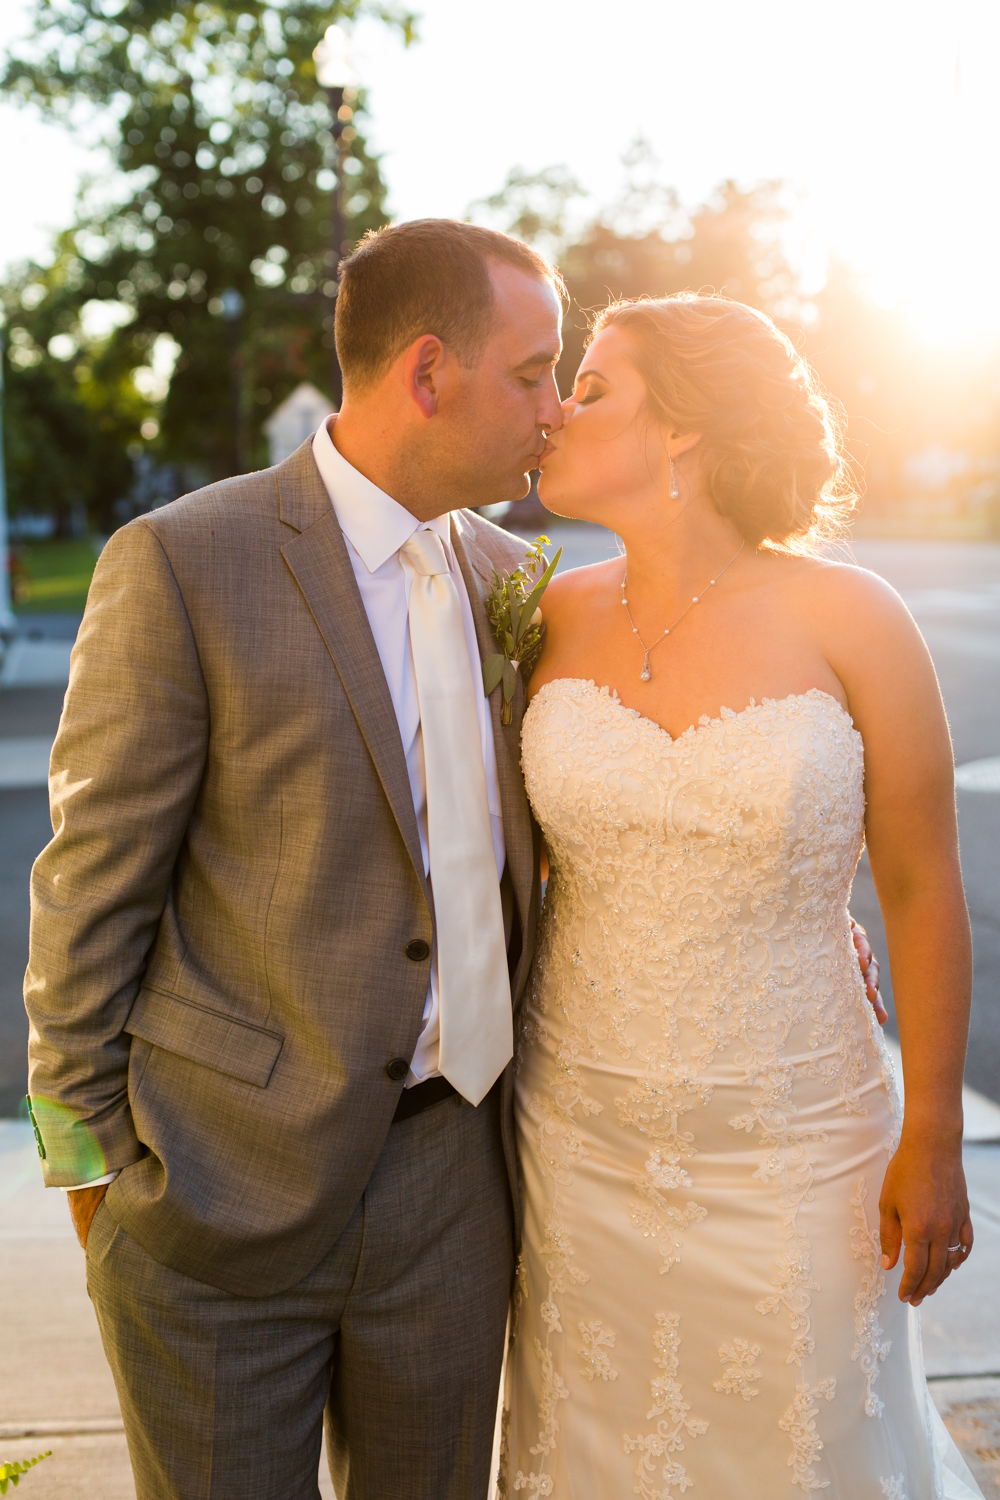 Bride and groom kiss outside at sunset.